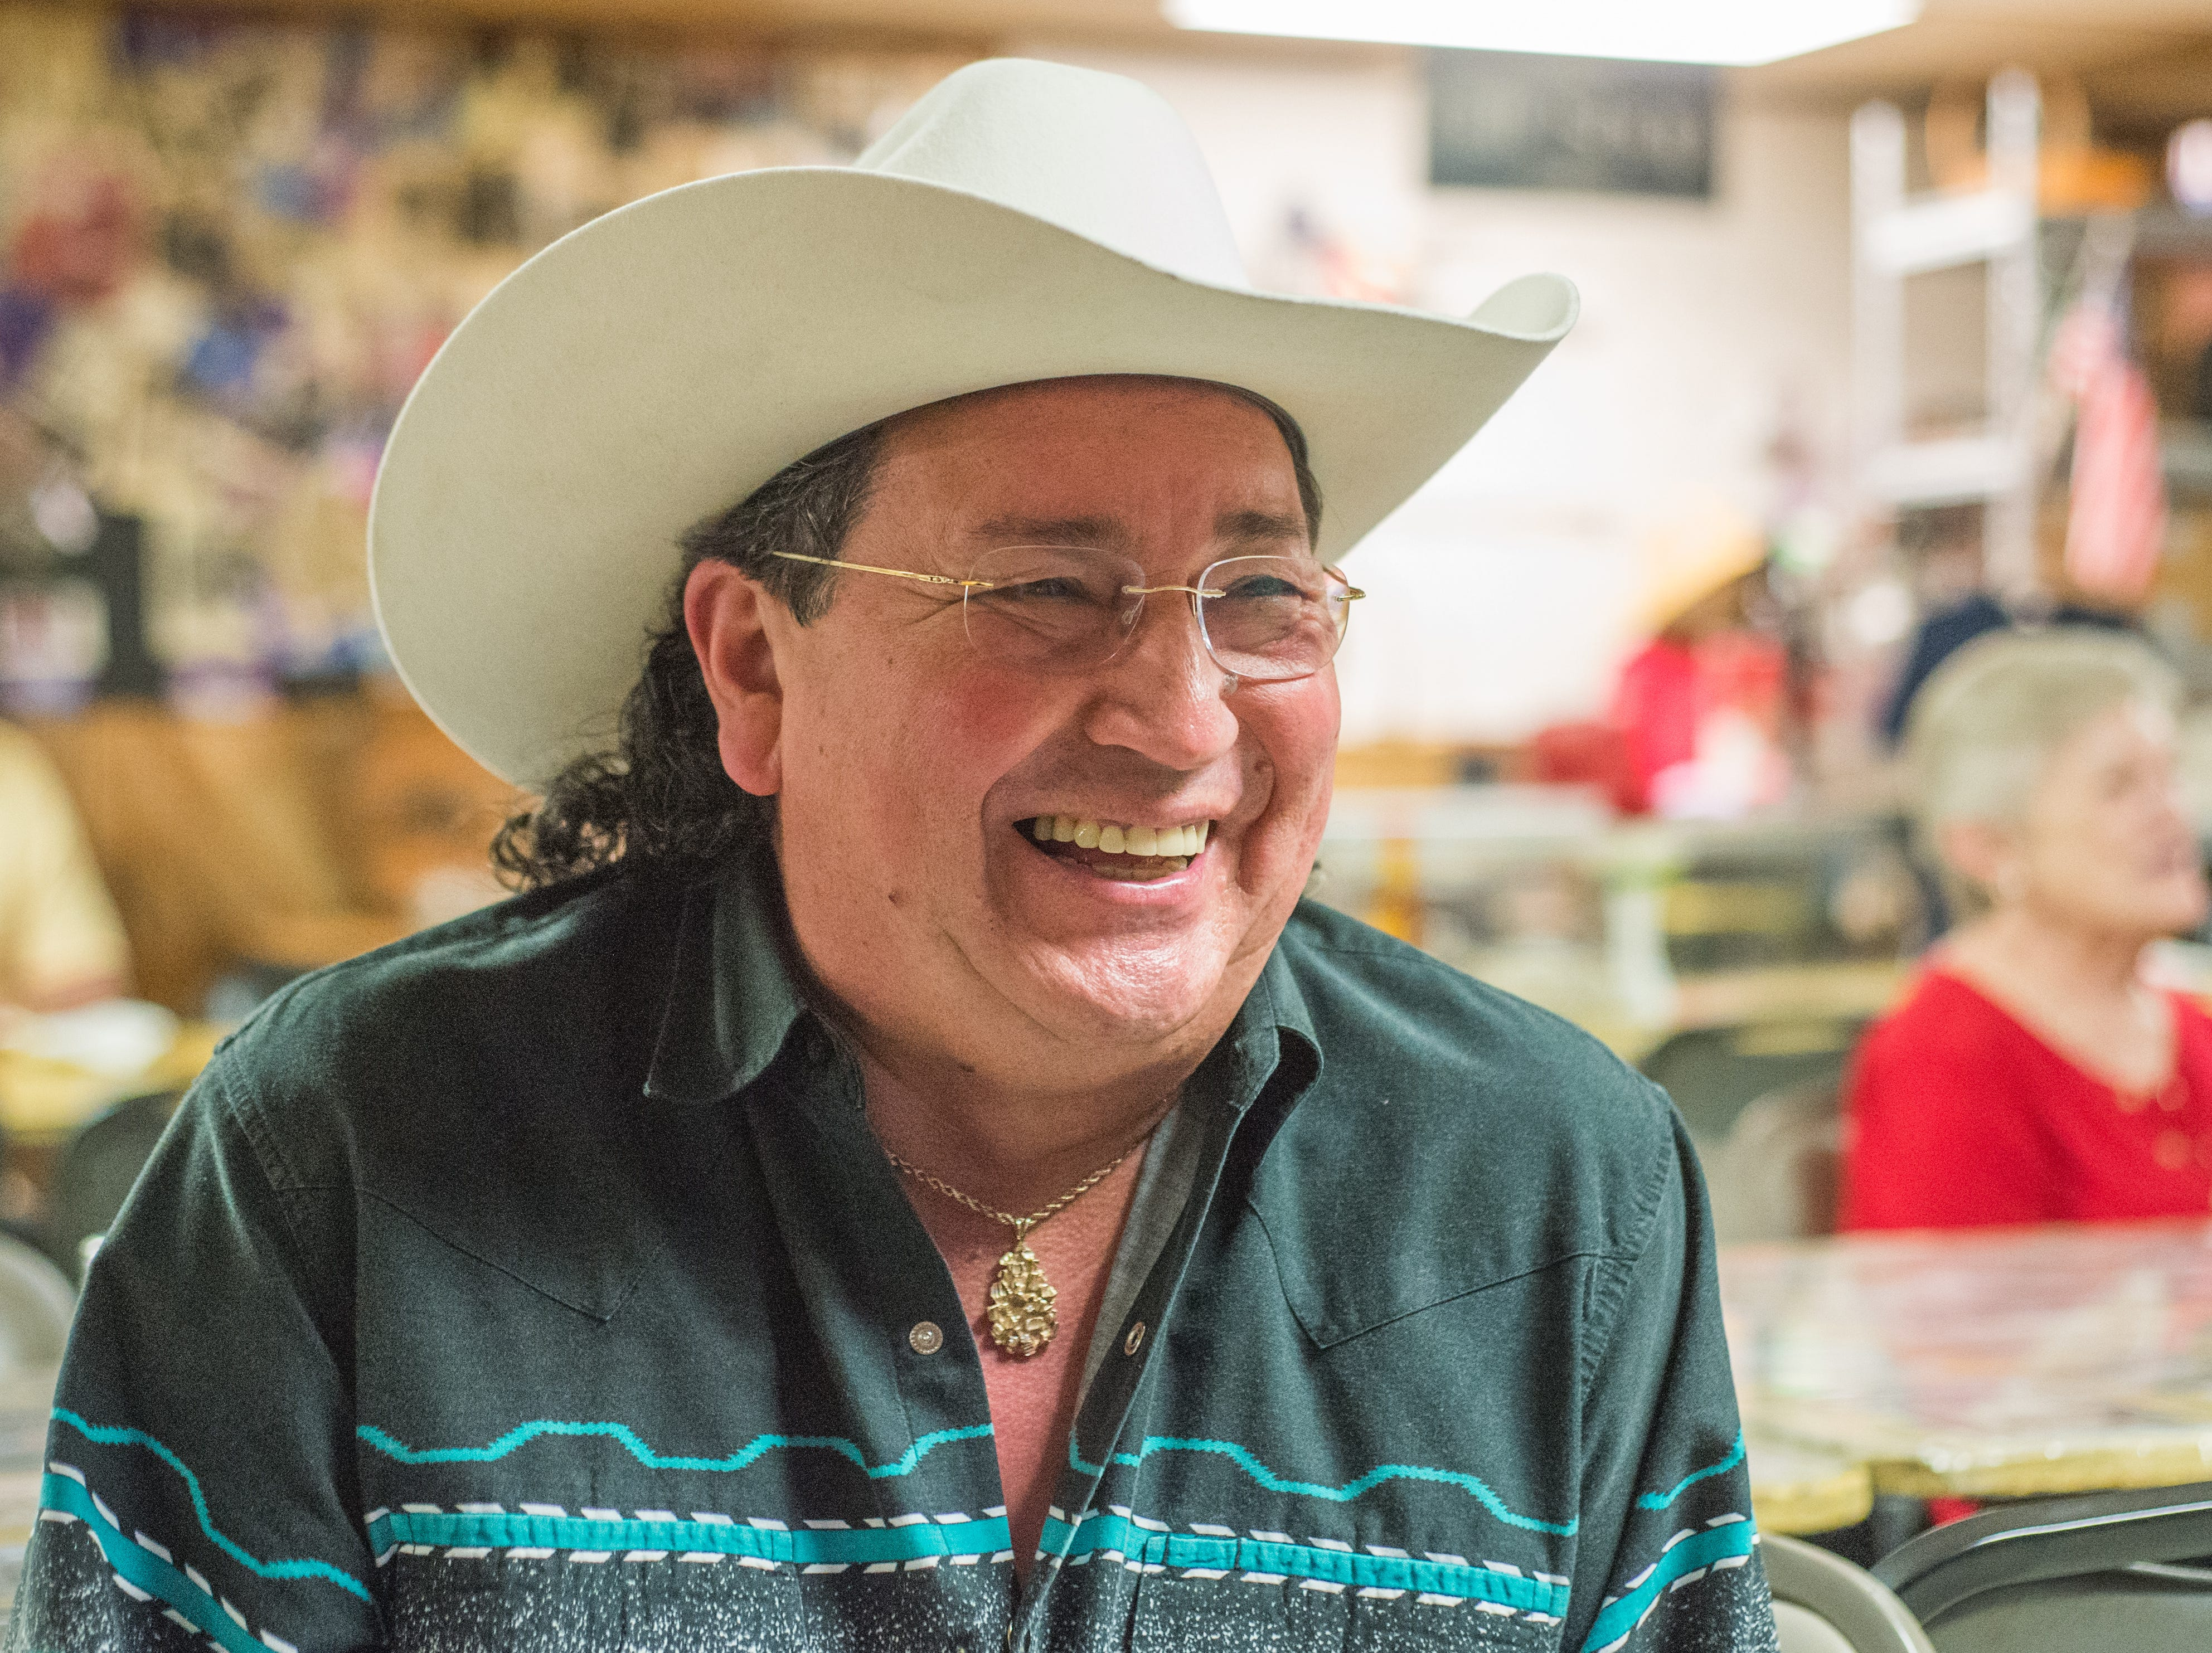 Sal Santiago has a great time at Long Hollow Jamboree in Goodlettsville on Saturday, April 7.